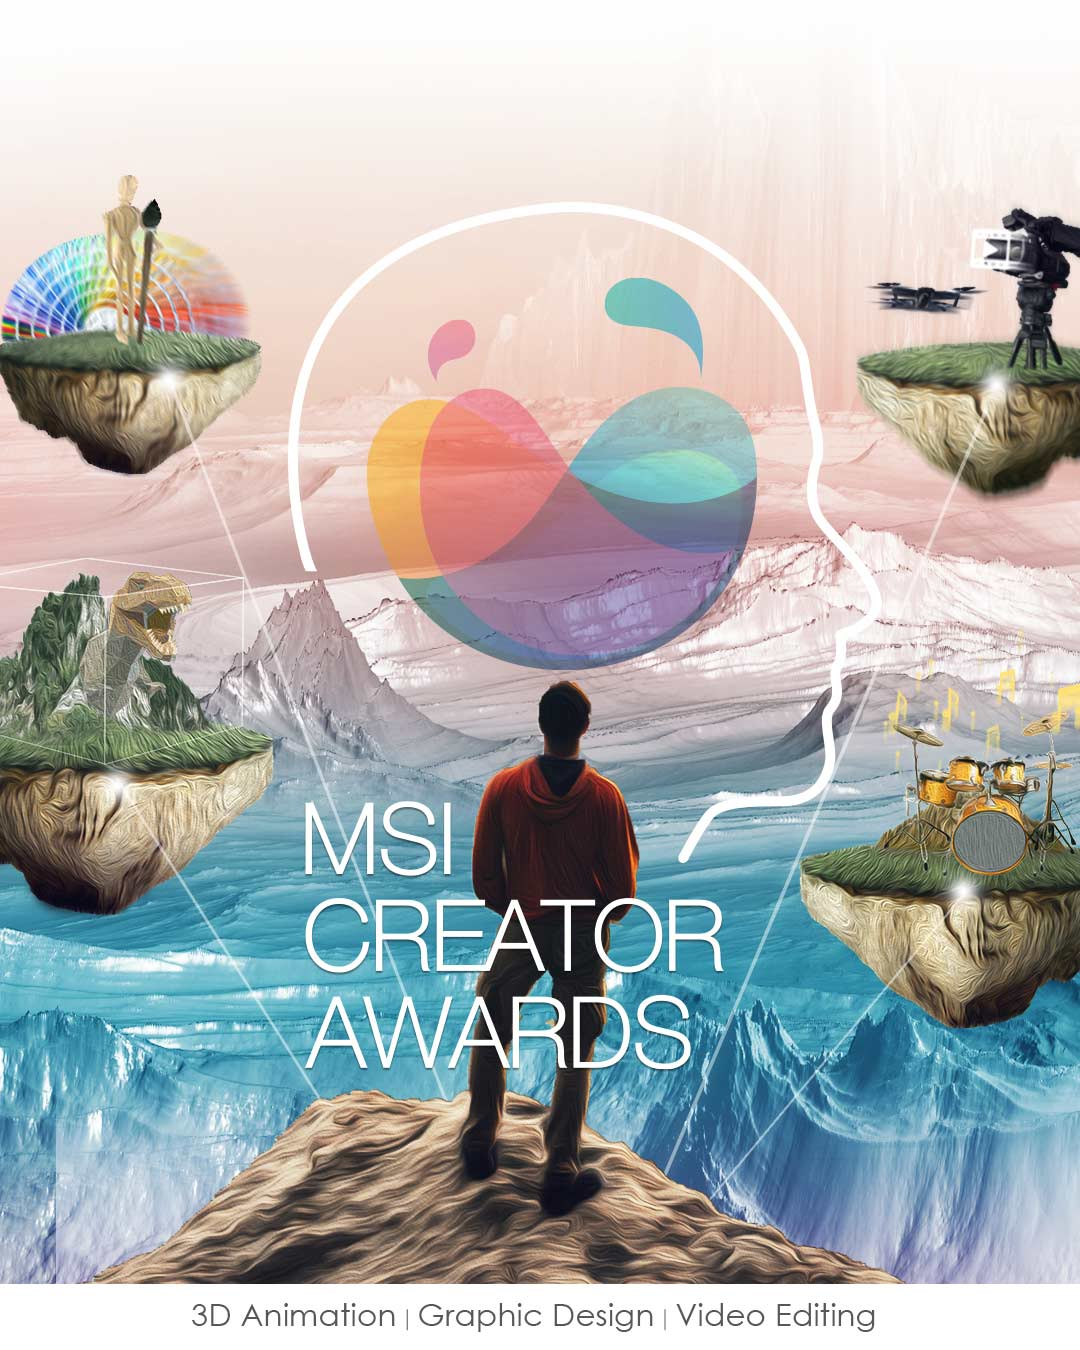 MSI Creator awards